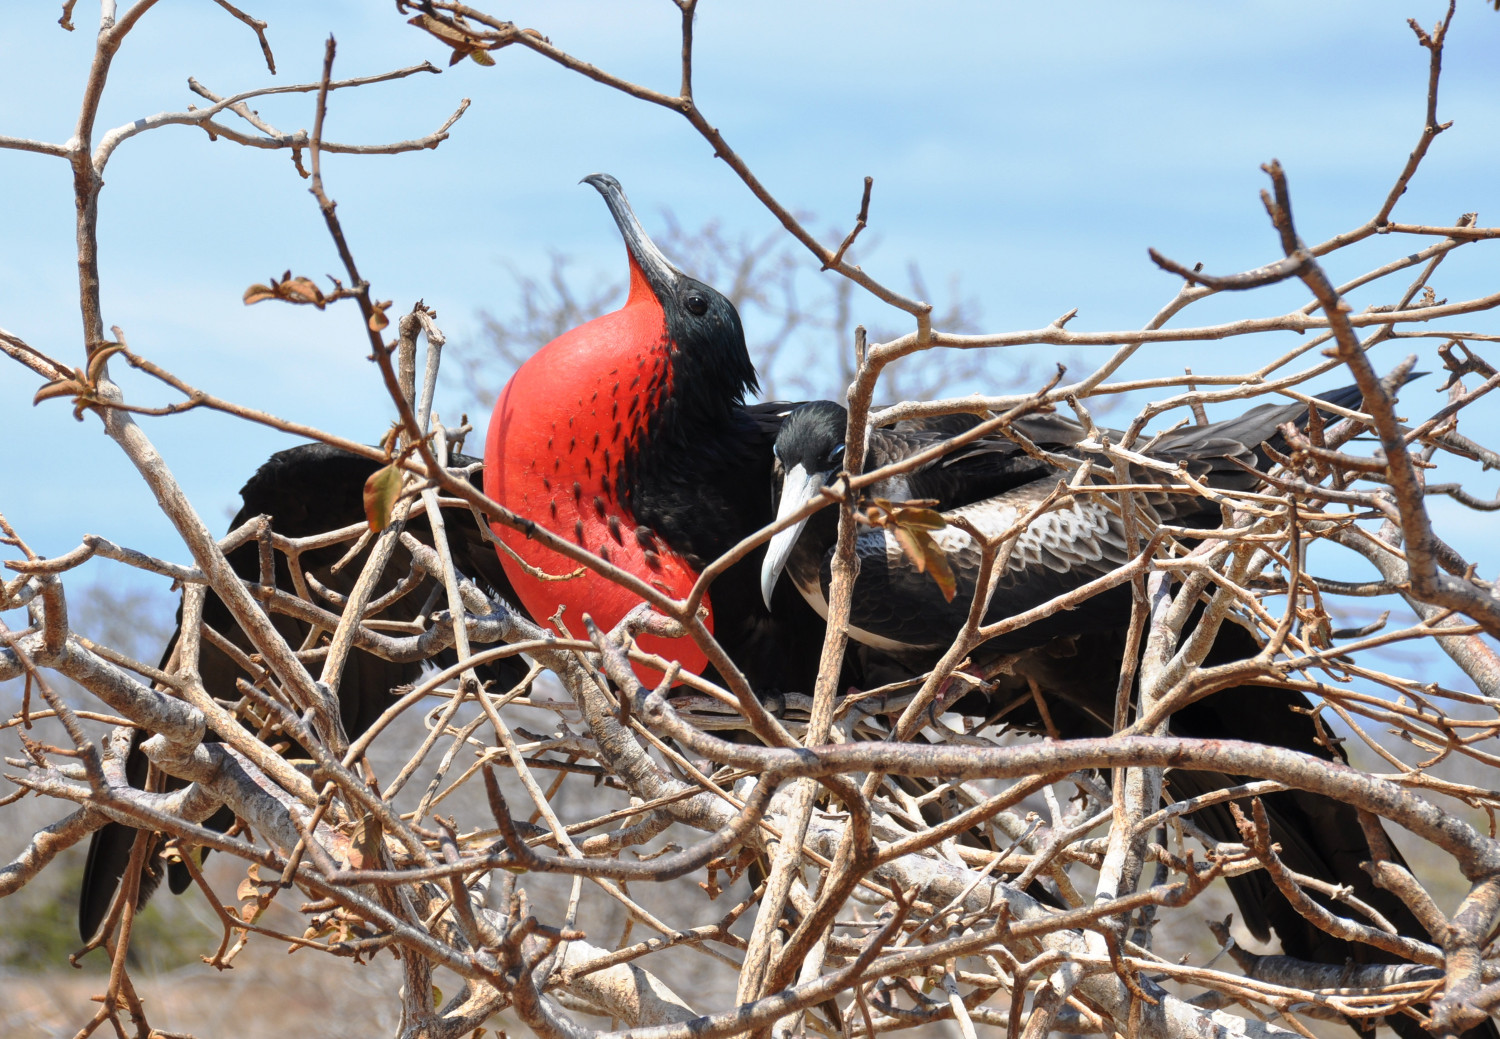 Nestbau: Ein Fregattvogel hat erfolgreich ein Weibchen angelockt | Nest building: a frigate bird has succeeded in attracting a mate